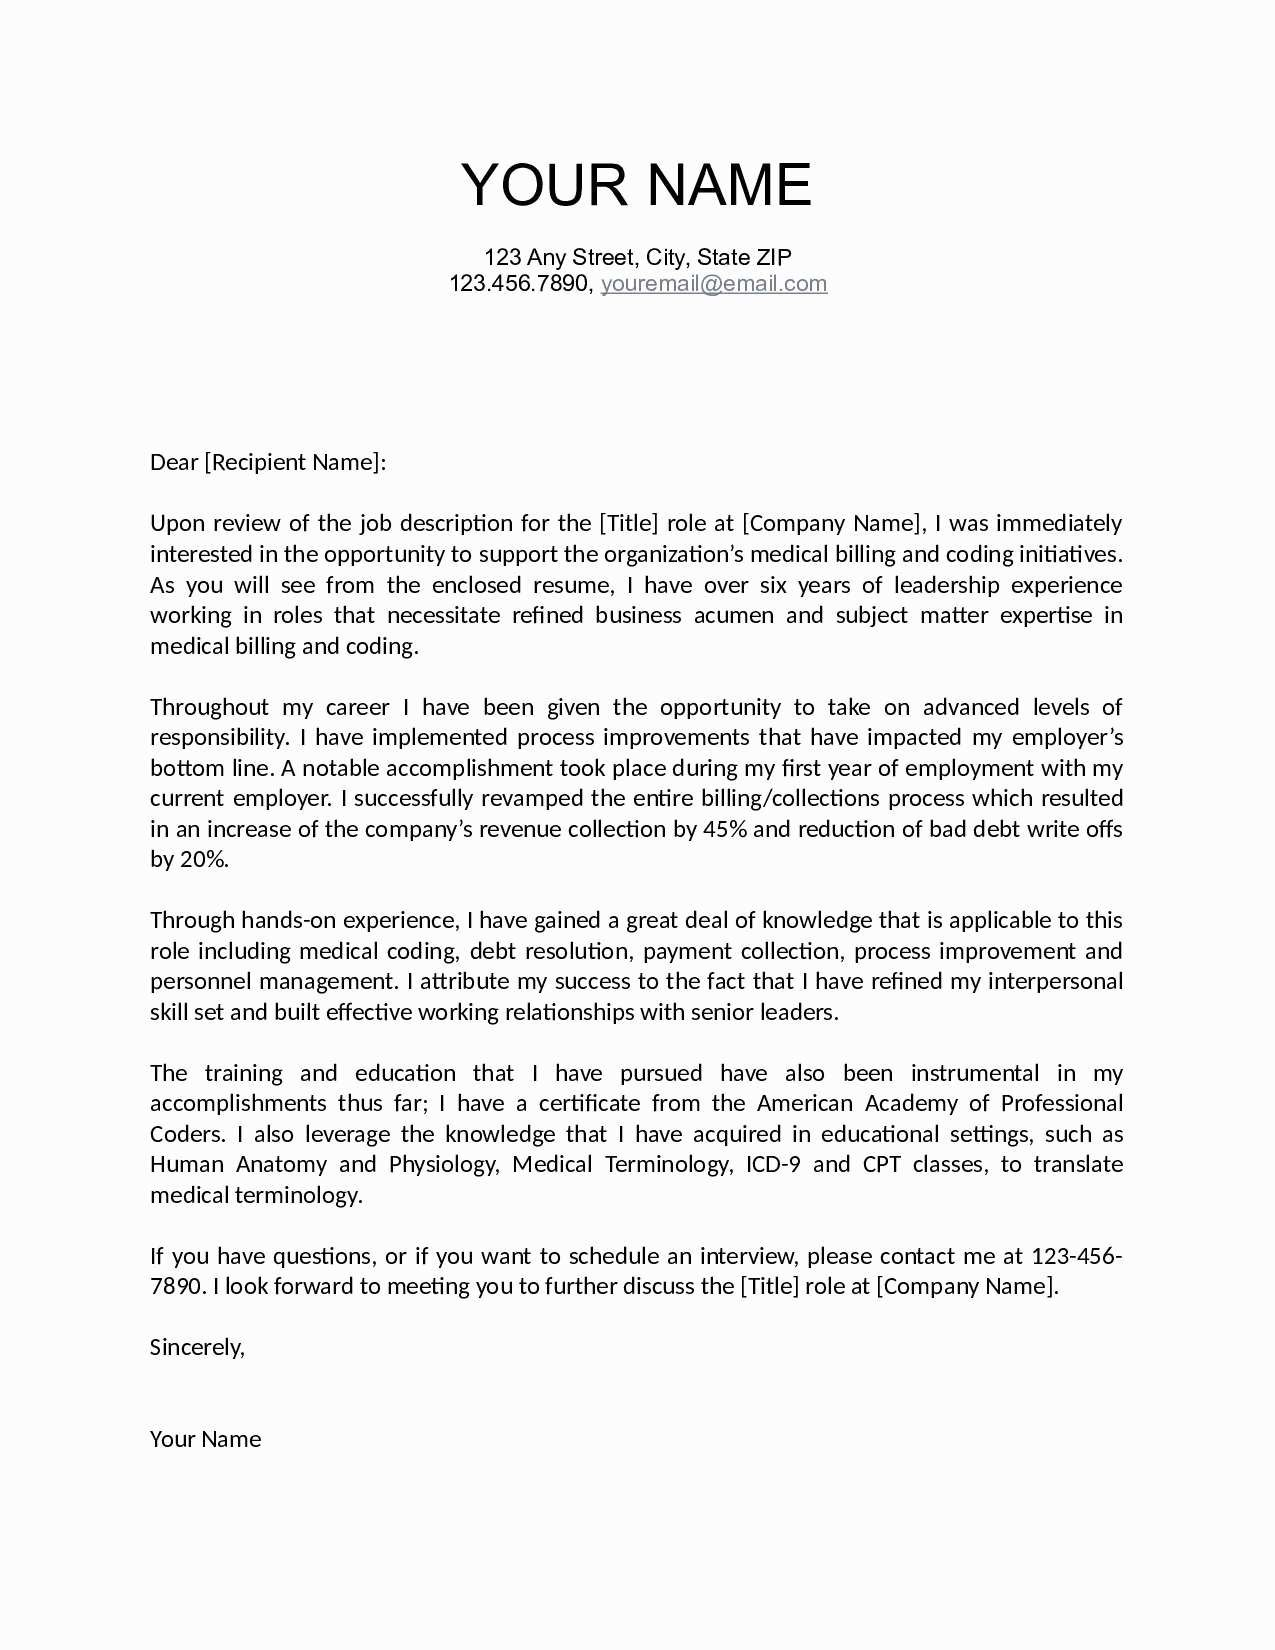 Corporate Resolution Letter Template - Letter Resolution Template